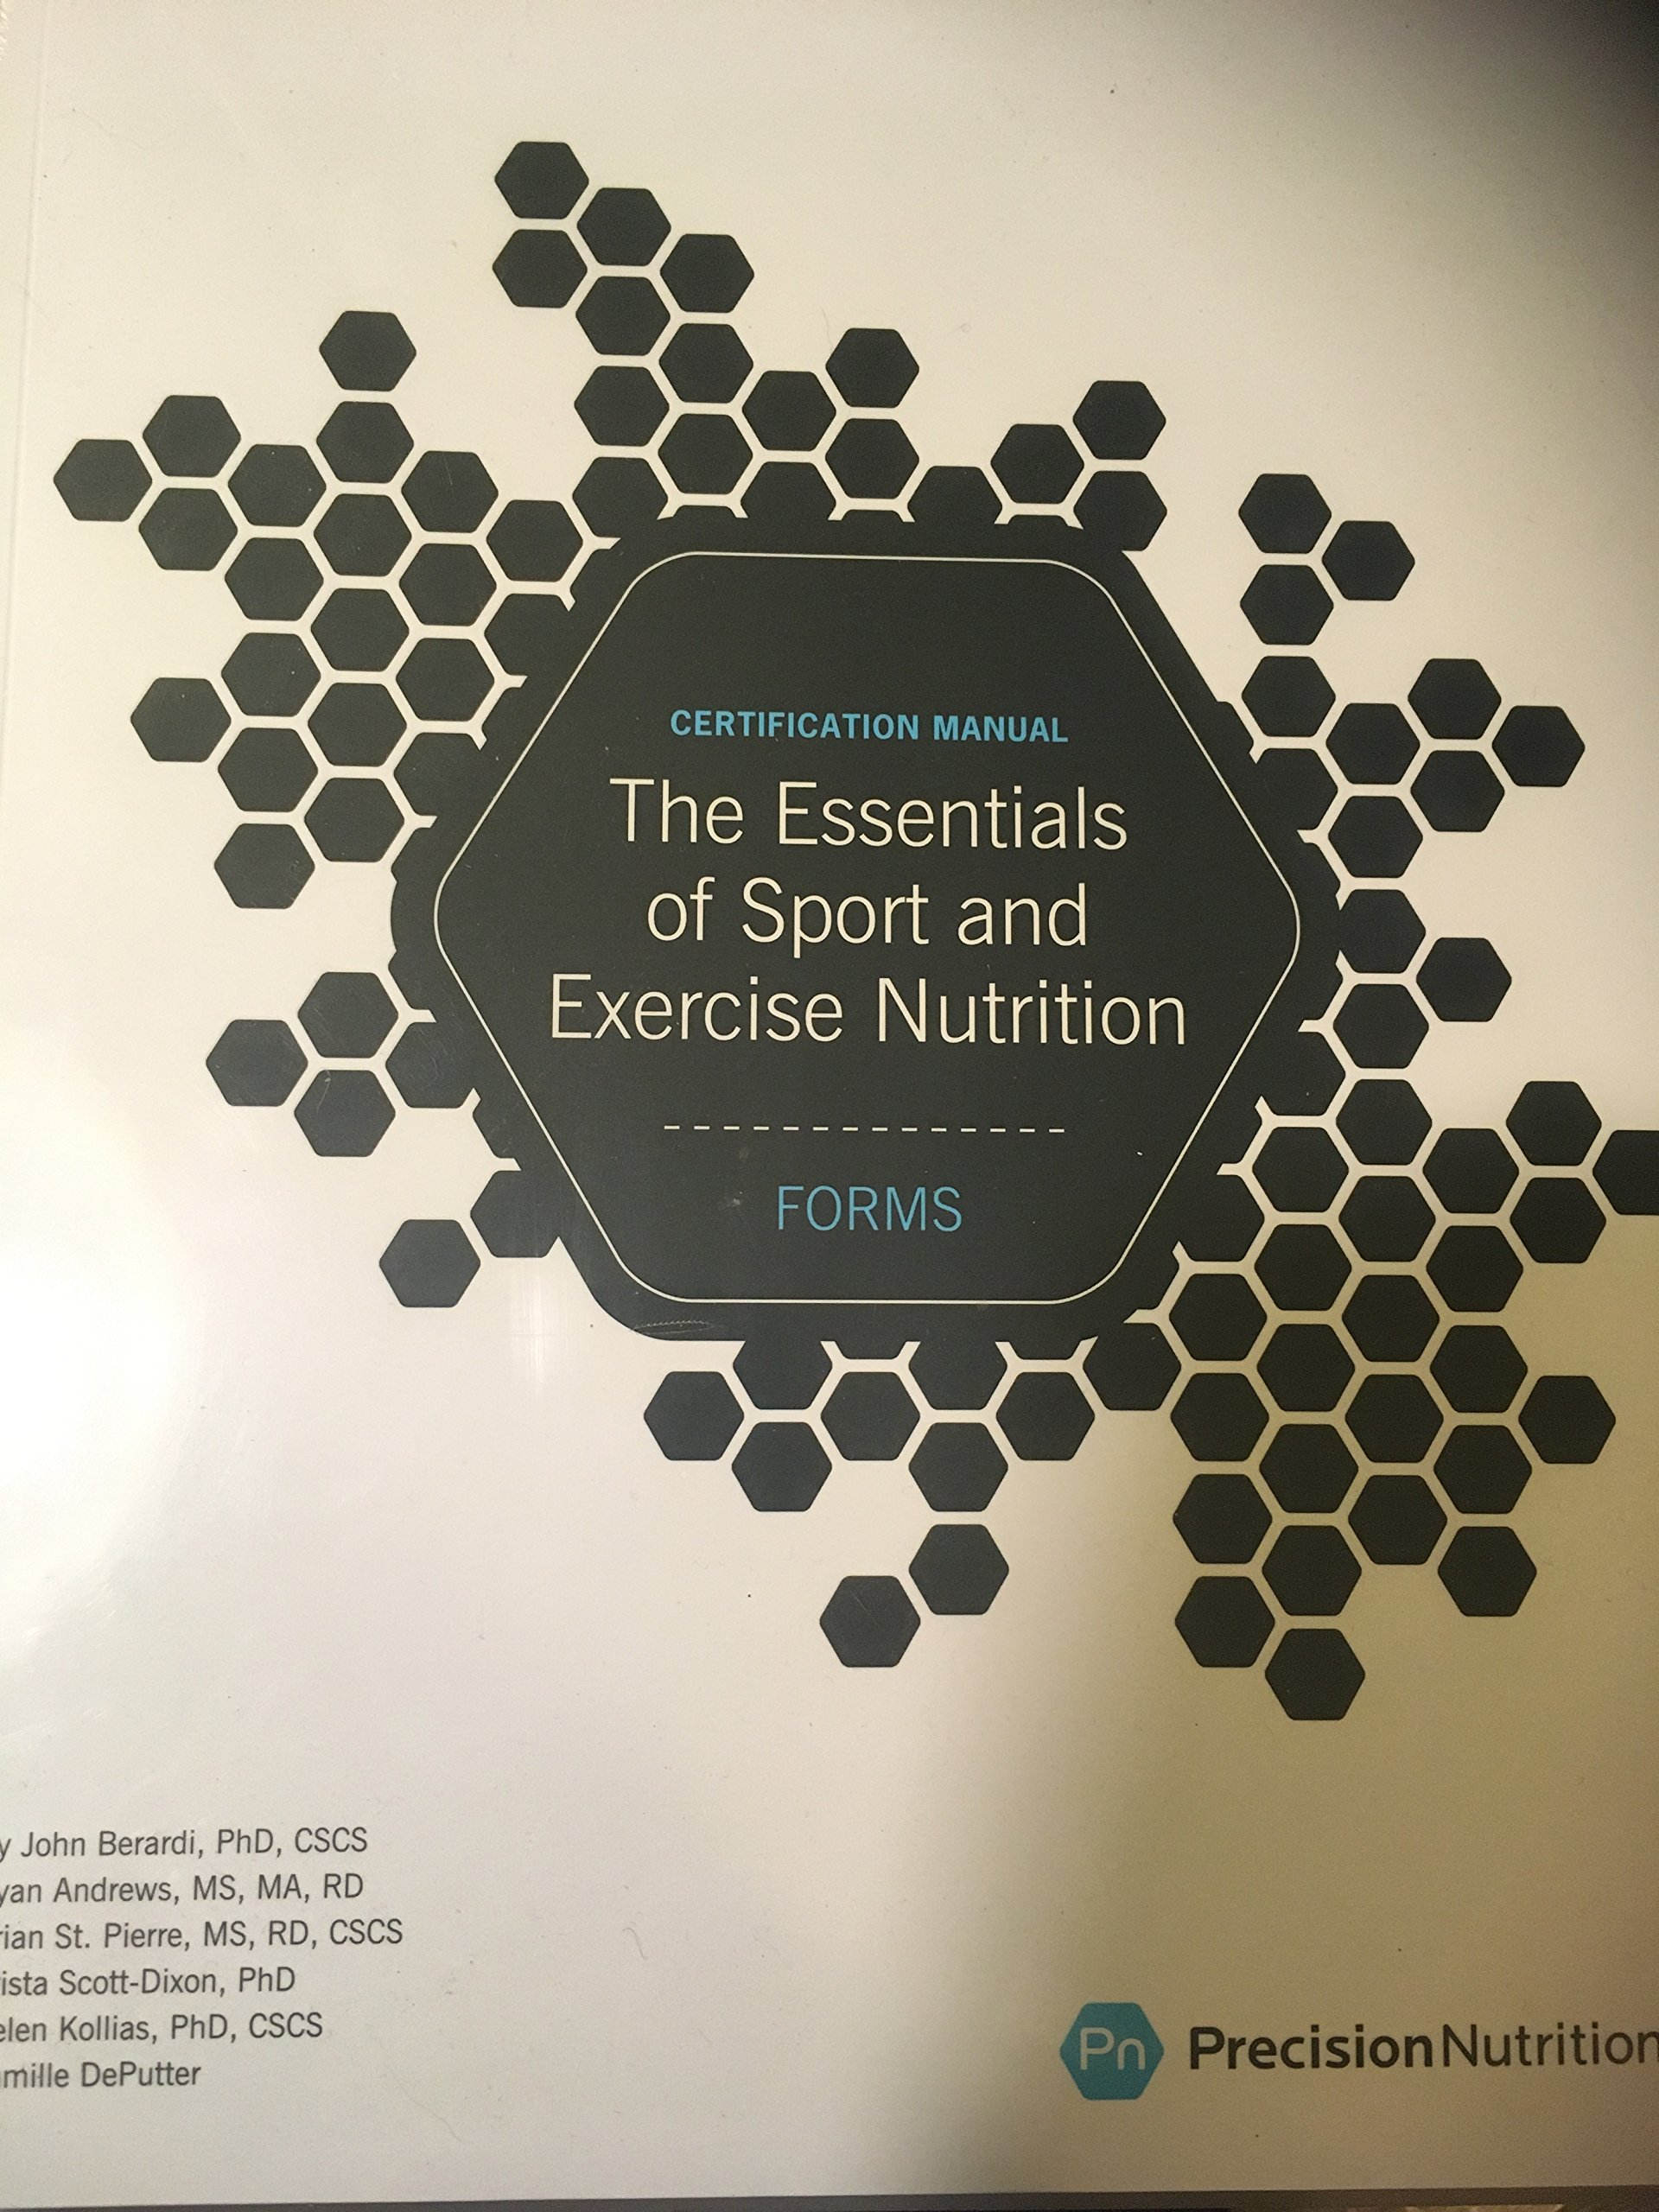 The Essentials Of Sport And Exercise Nutrition Certification Manual